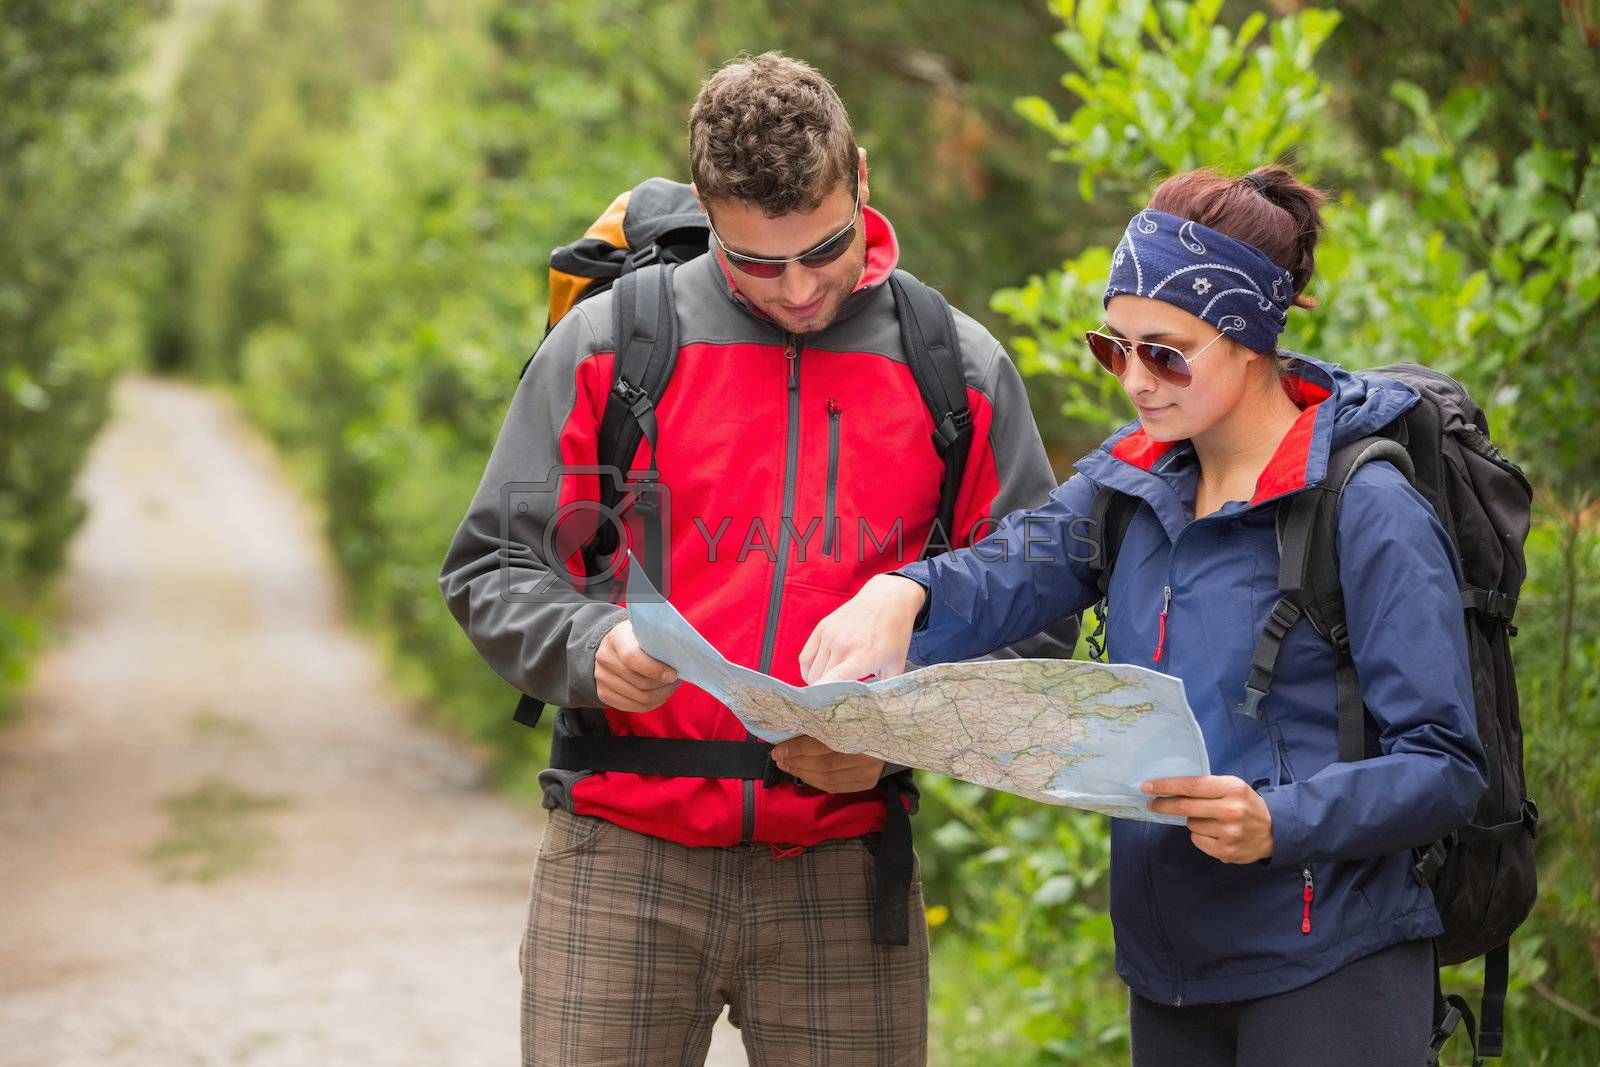 Couple going on a hike together looking at map by Wavebreakmedia